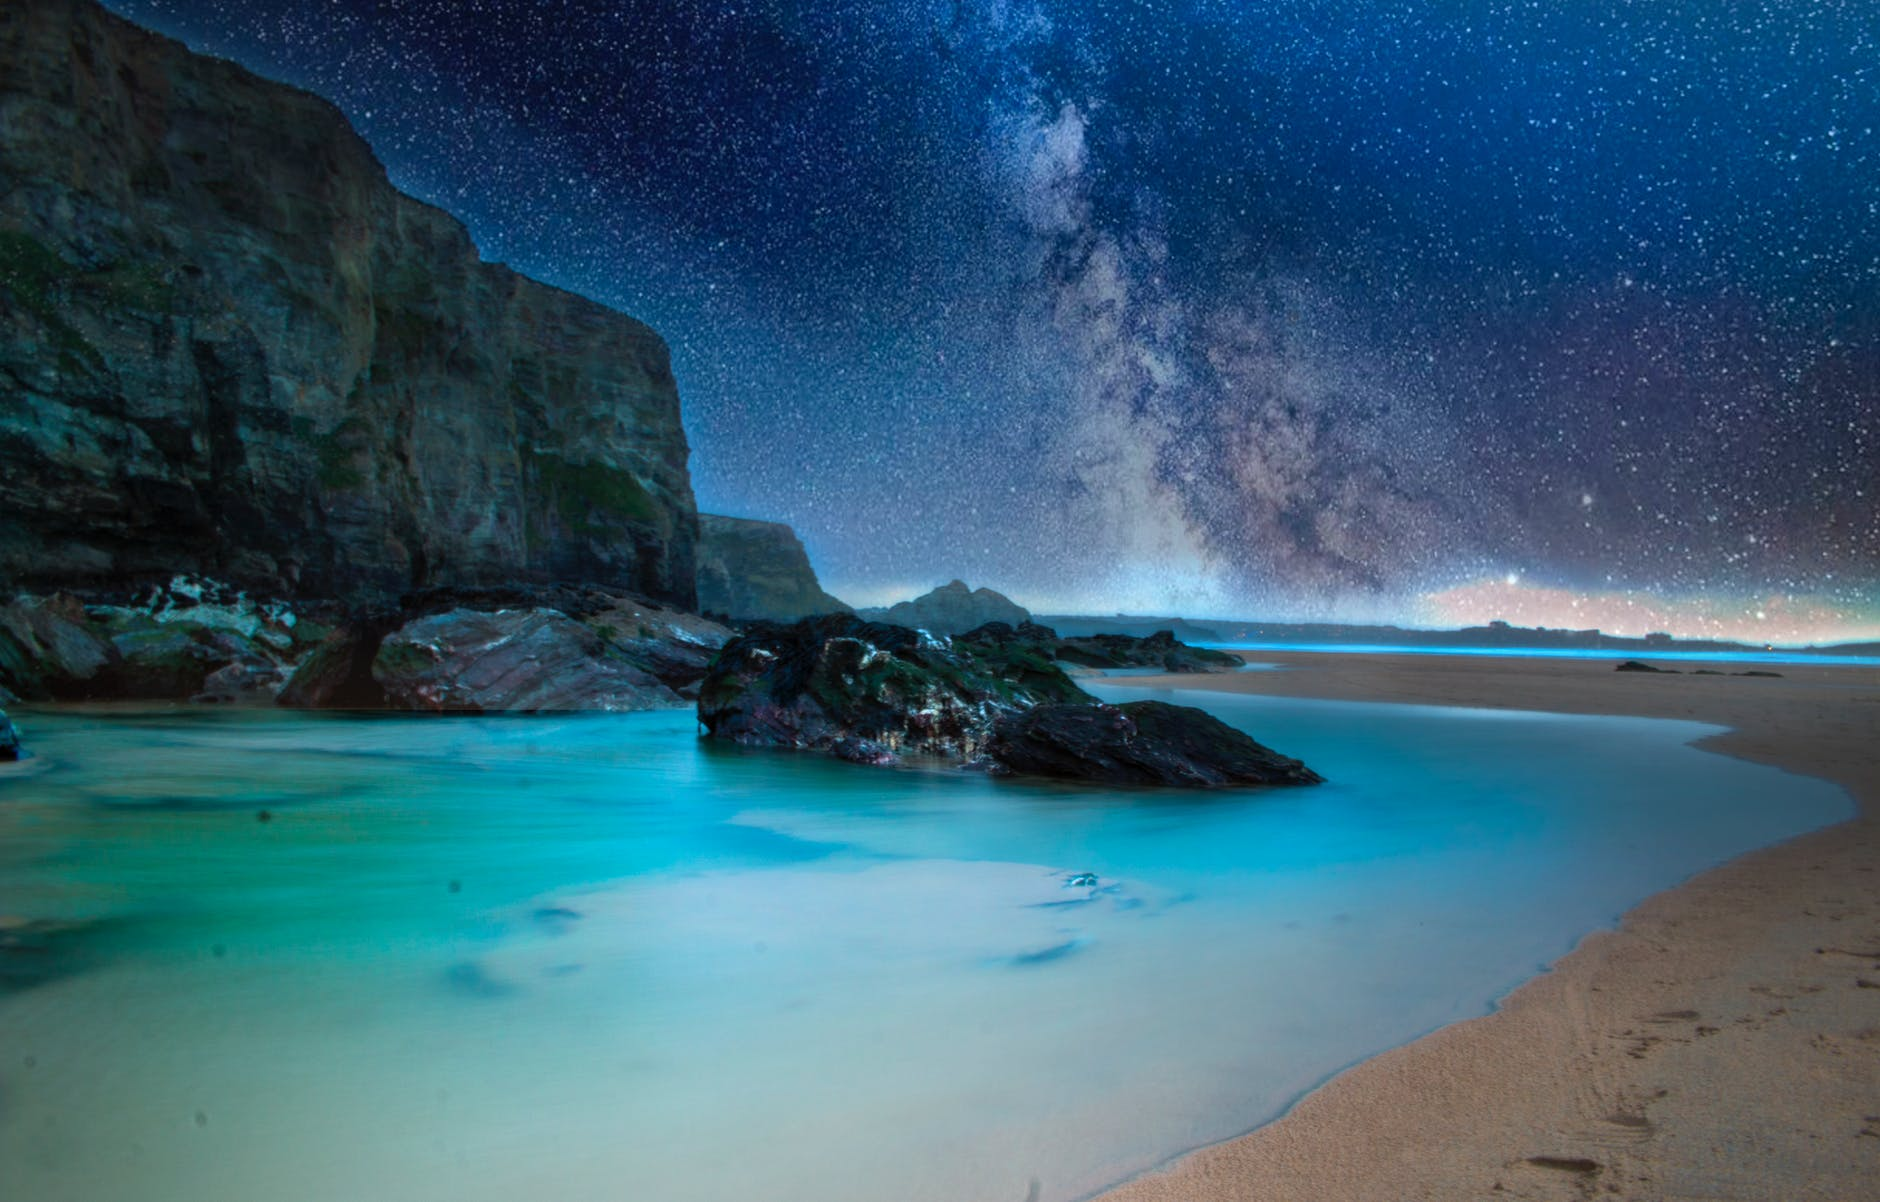 ocean with rock formation under starry night